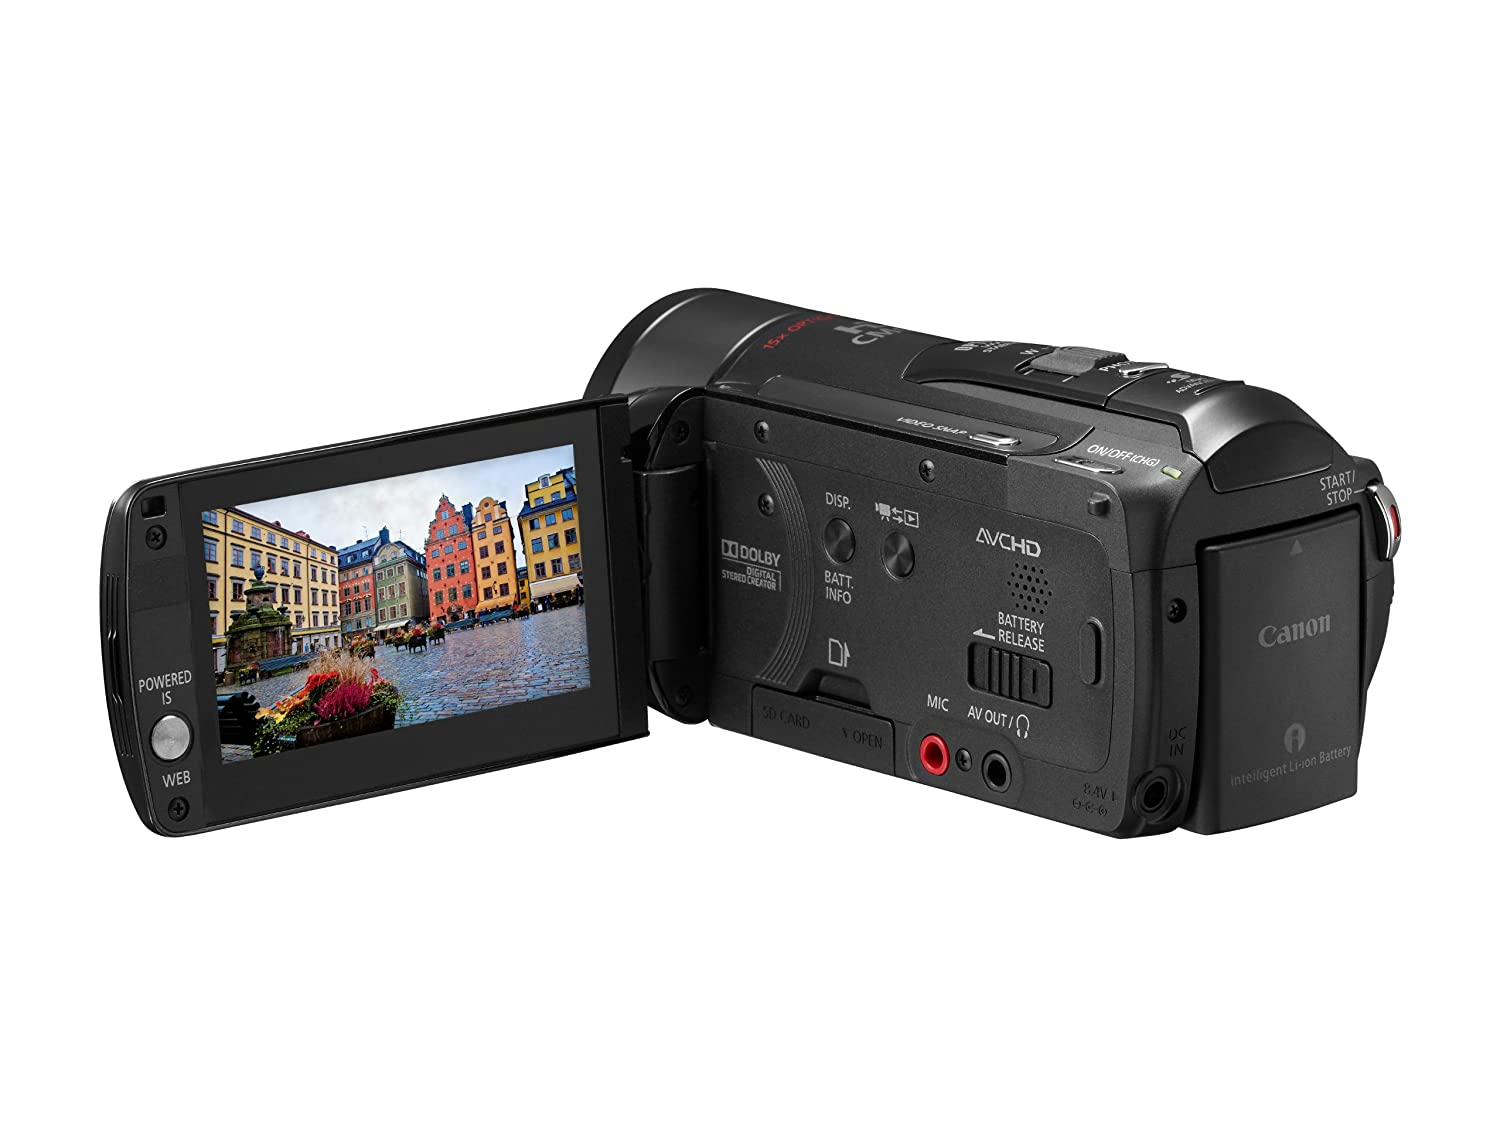 vixia hf r10 manual best user guides and manuals u2022 rh raviteja co Canon VIXIA HF R800 Canon VIXIA HF R300